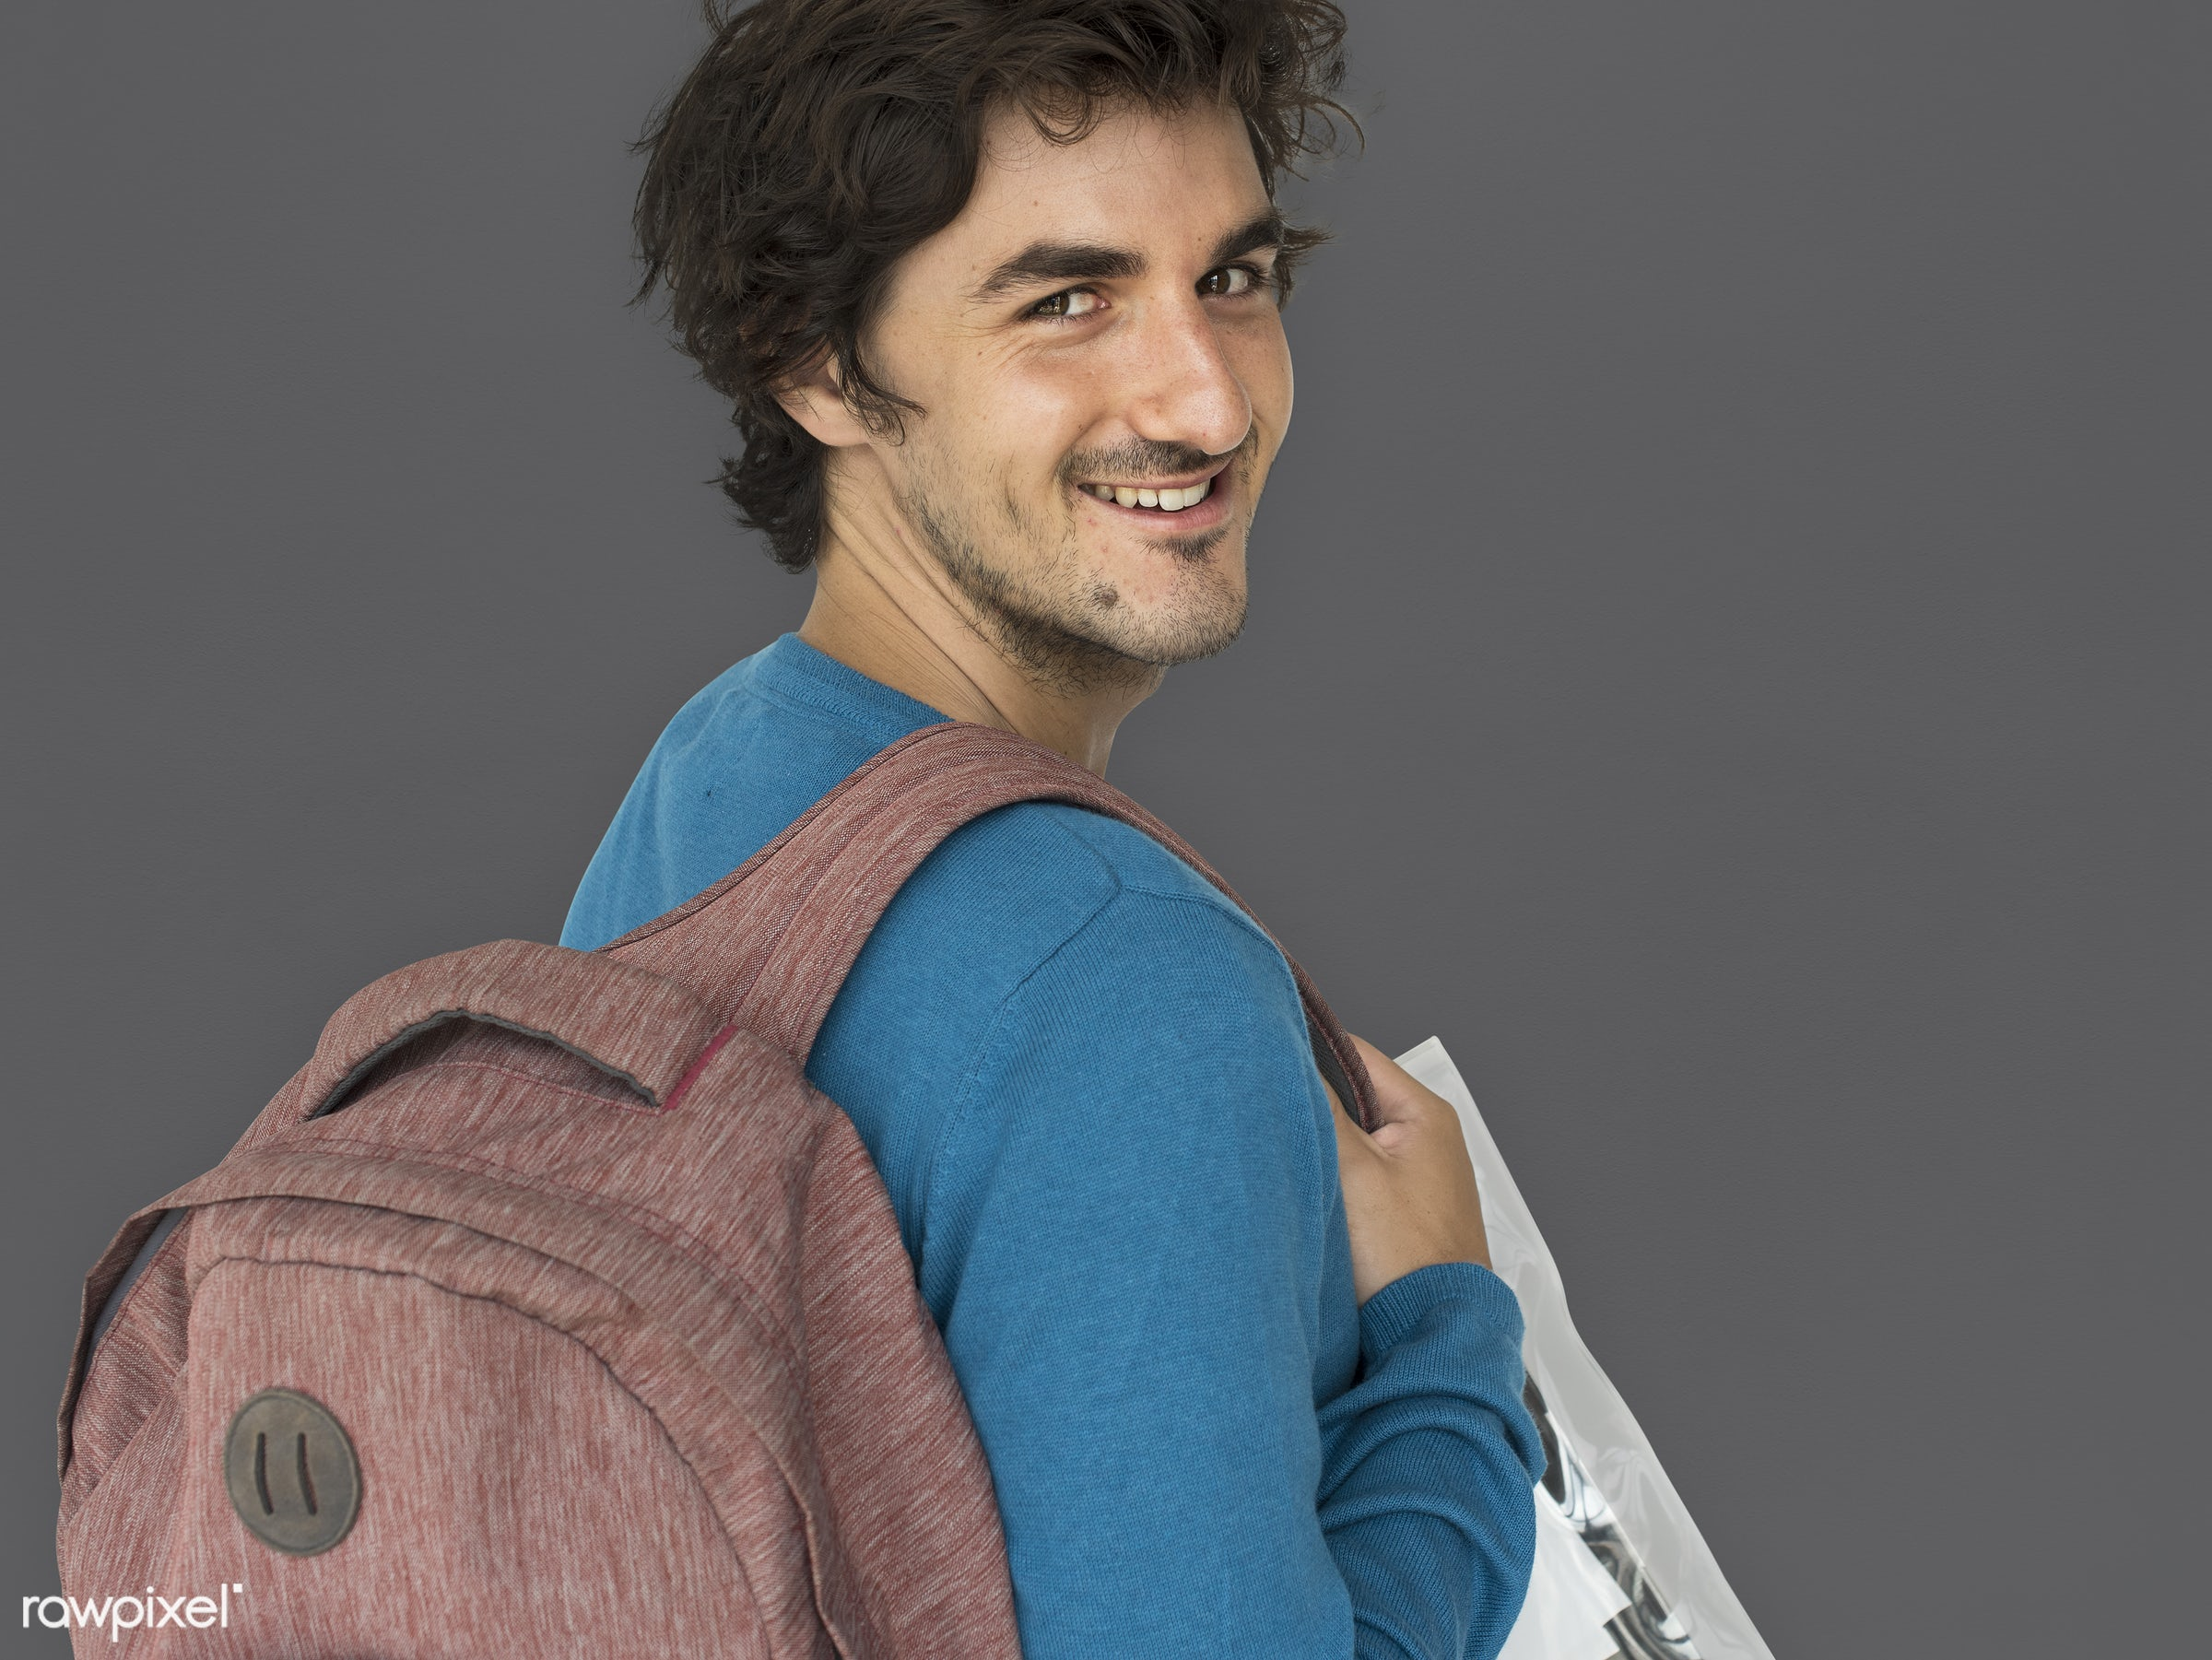 studio, expression, person, people, caucasian, lifestyle, schoolbag, smile, positive, cheerful, isolated, earth tones, bag,...